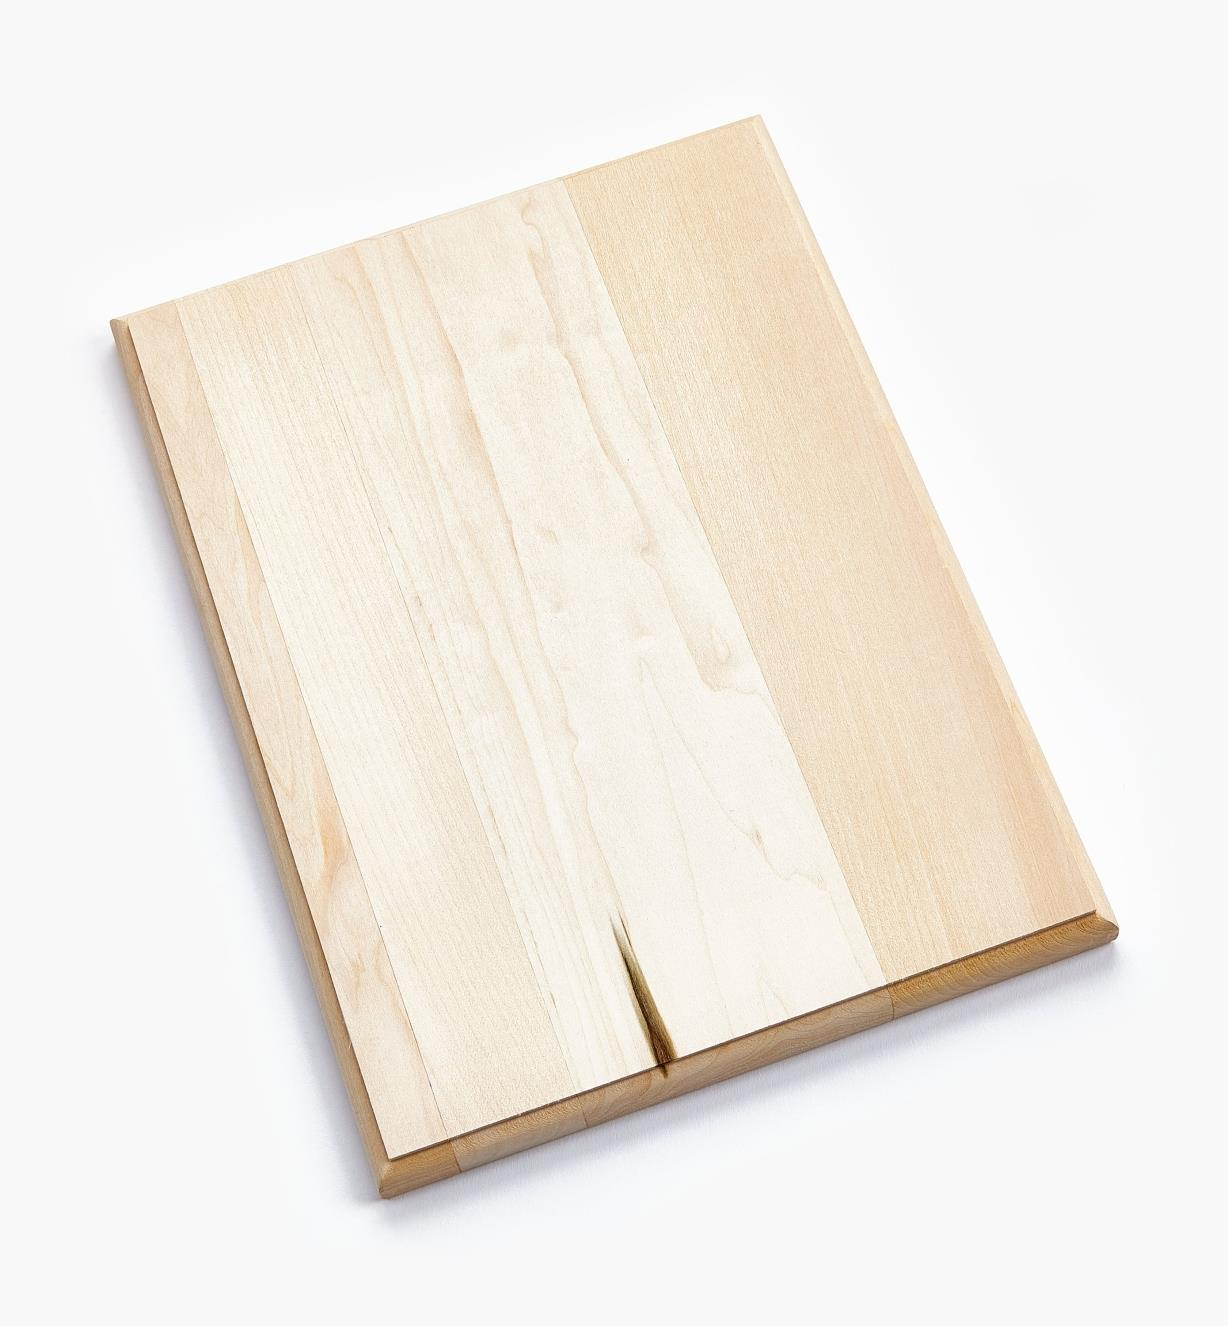 "38N1232 - 9"" x 12"" Rect. Profiled-Edge Basswood Plaque, ea."